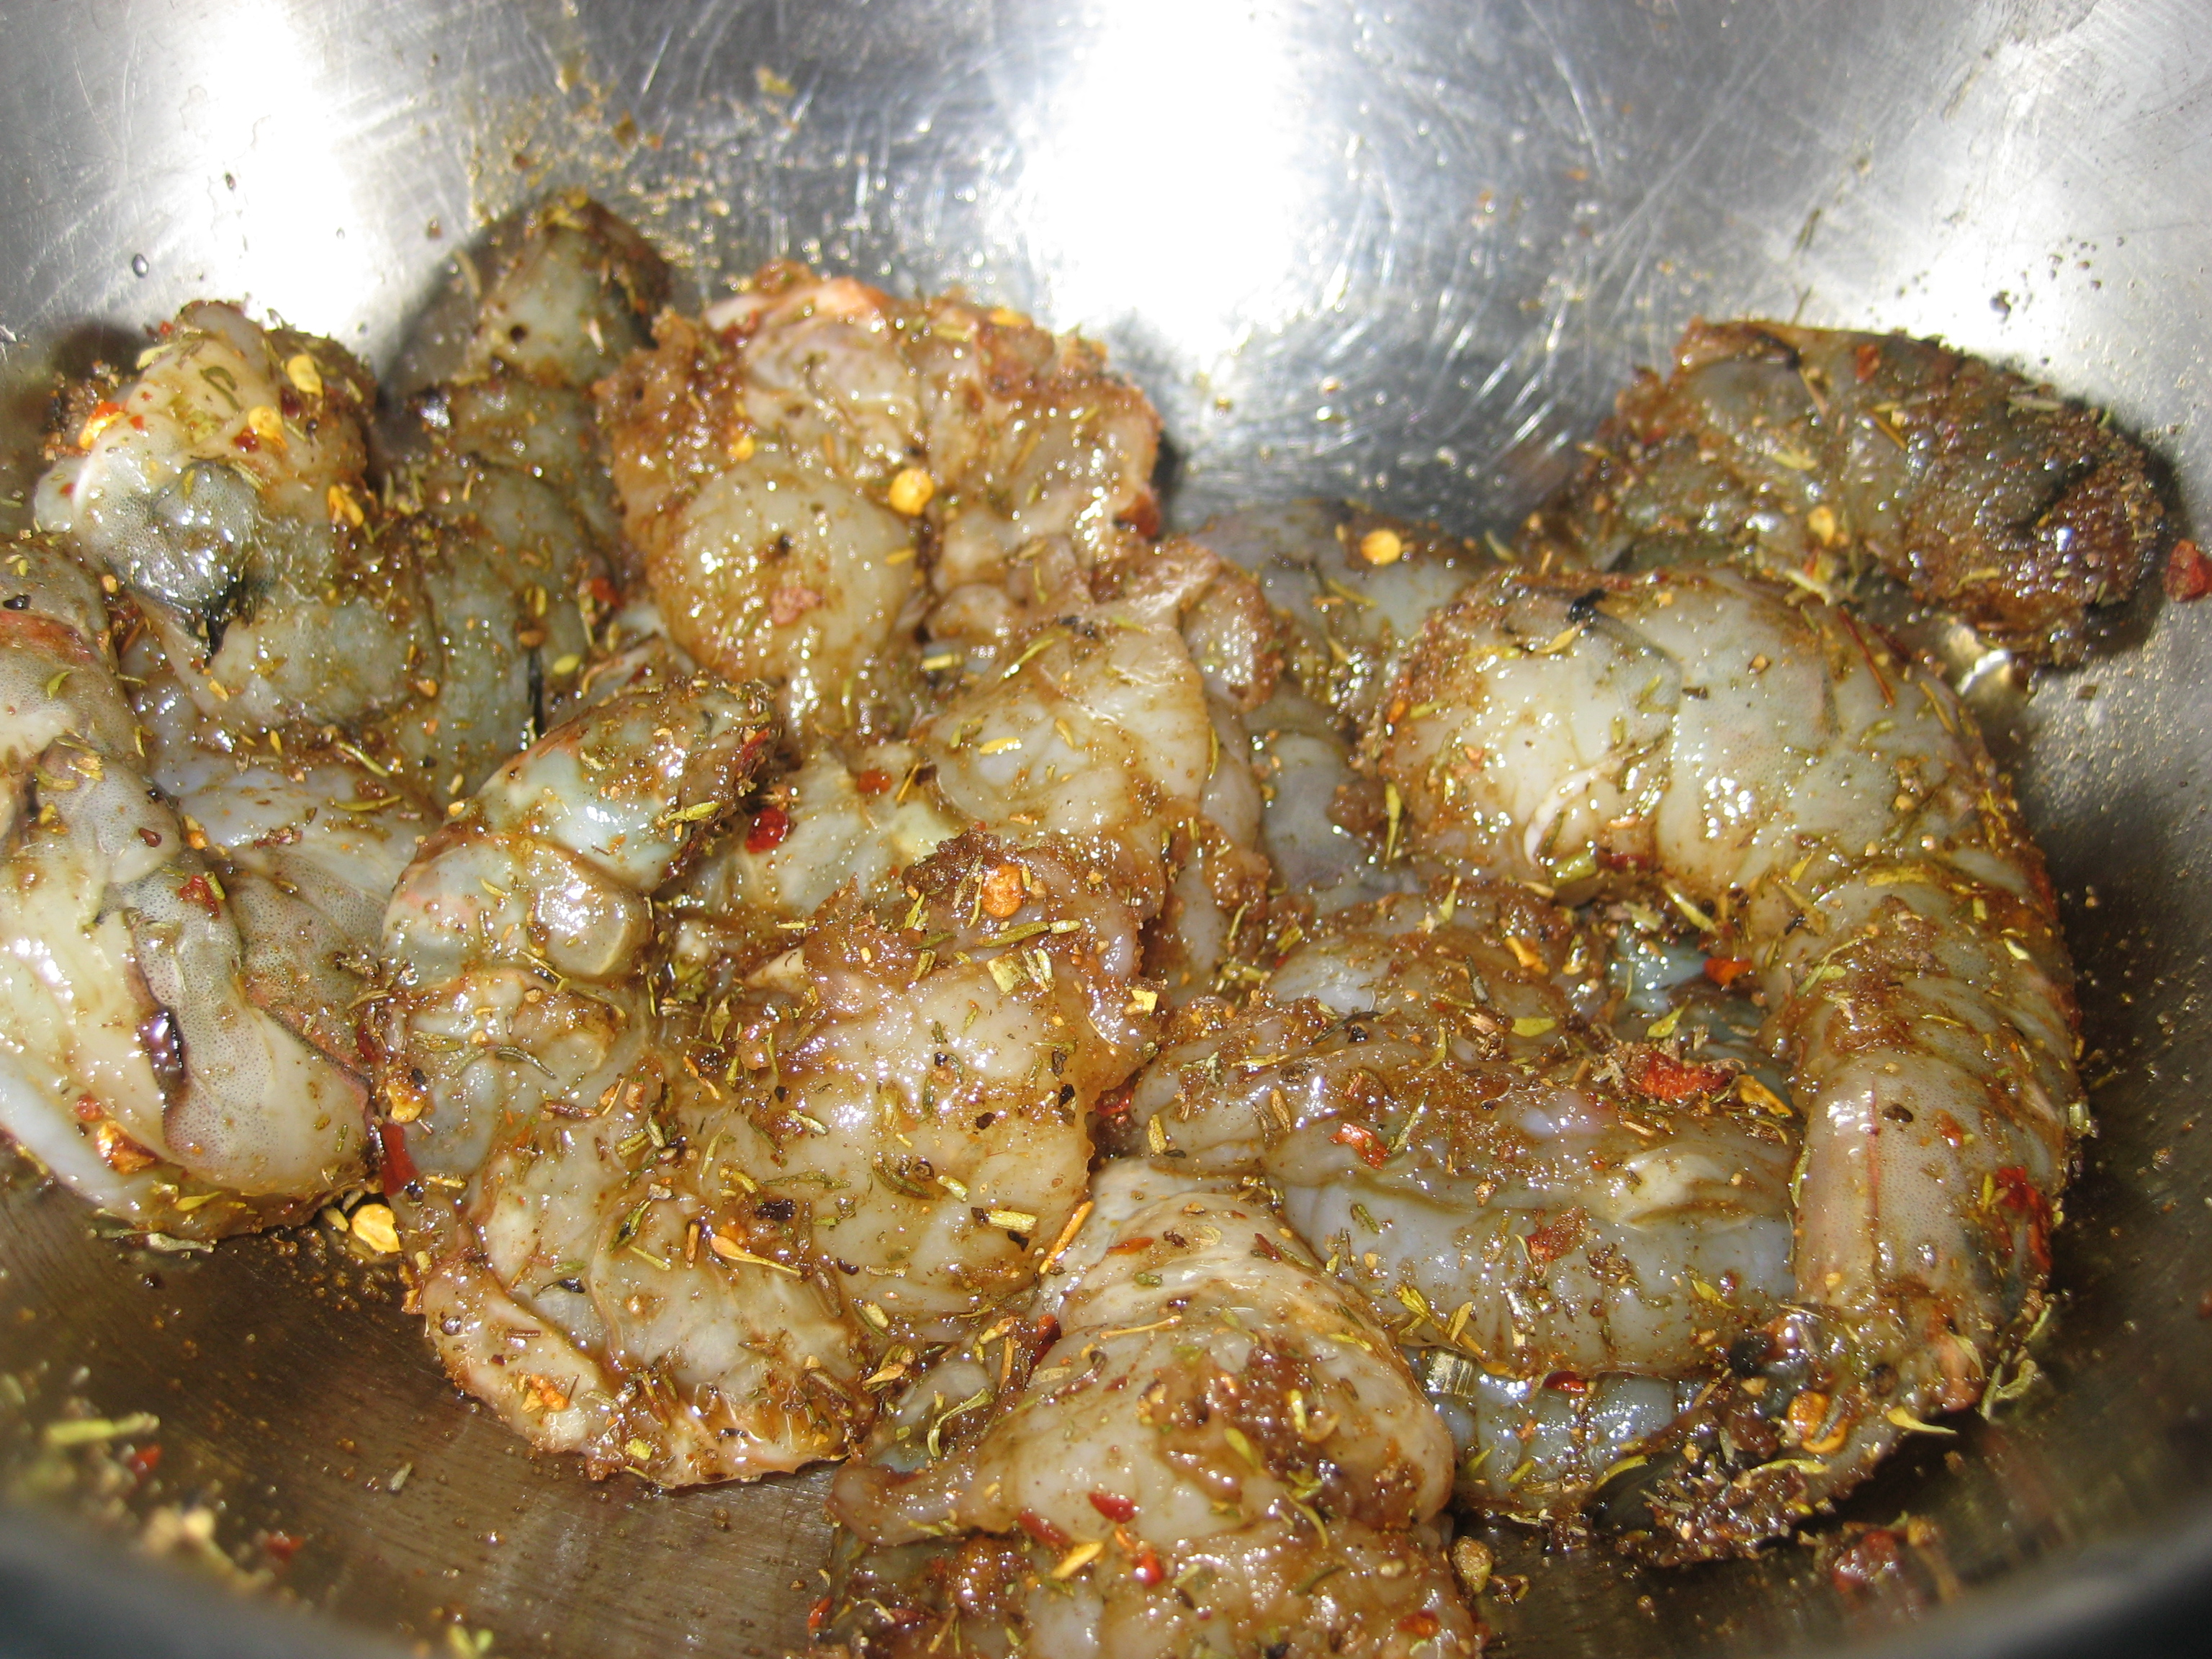 I let the shrimp sit in the spice blend for about 20 minutes.